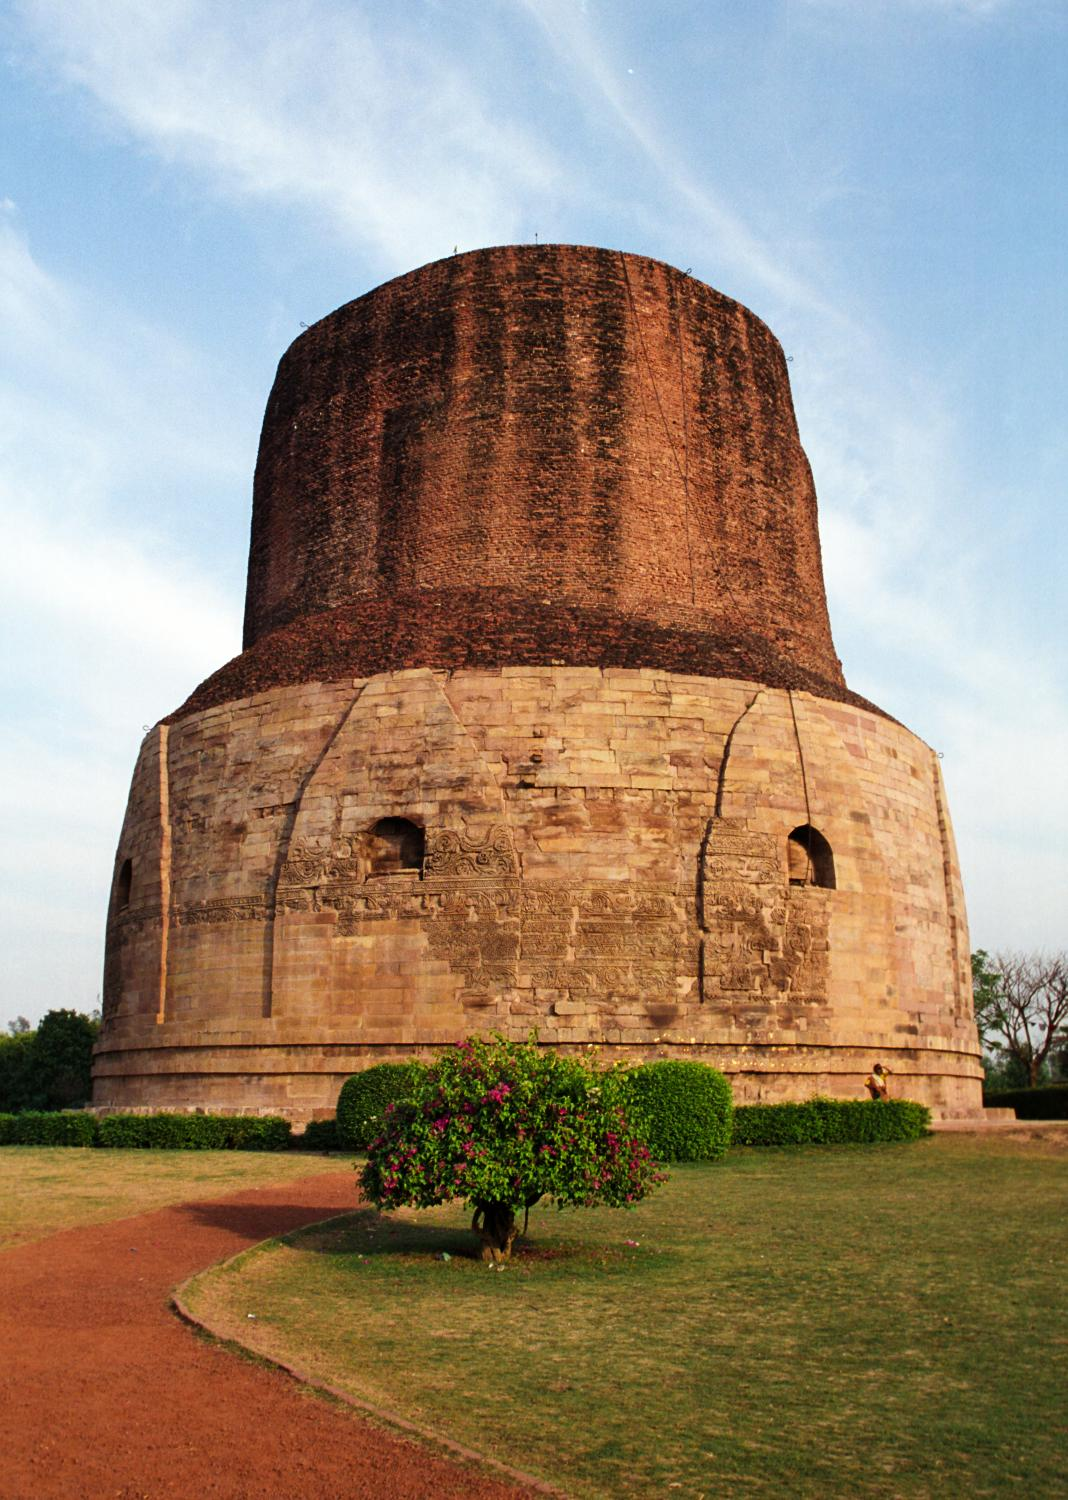 First Next Then After That Finally likewise Subtractionwithin Withborrowingp additionally Dhamek Stupa Sarnath Uttar Pradesh Site Of Buddha First Sermon After Enlightenment further Crocodile Funny Crafts Idea For Kids further Et Word Family Trace And Write Color. on first grade printable worksheets